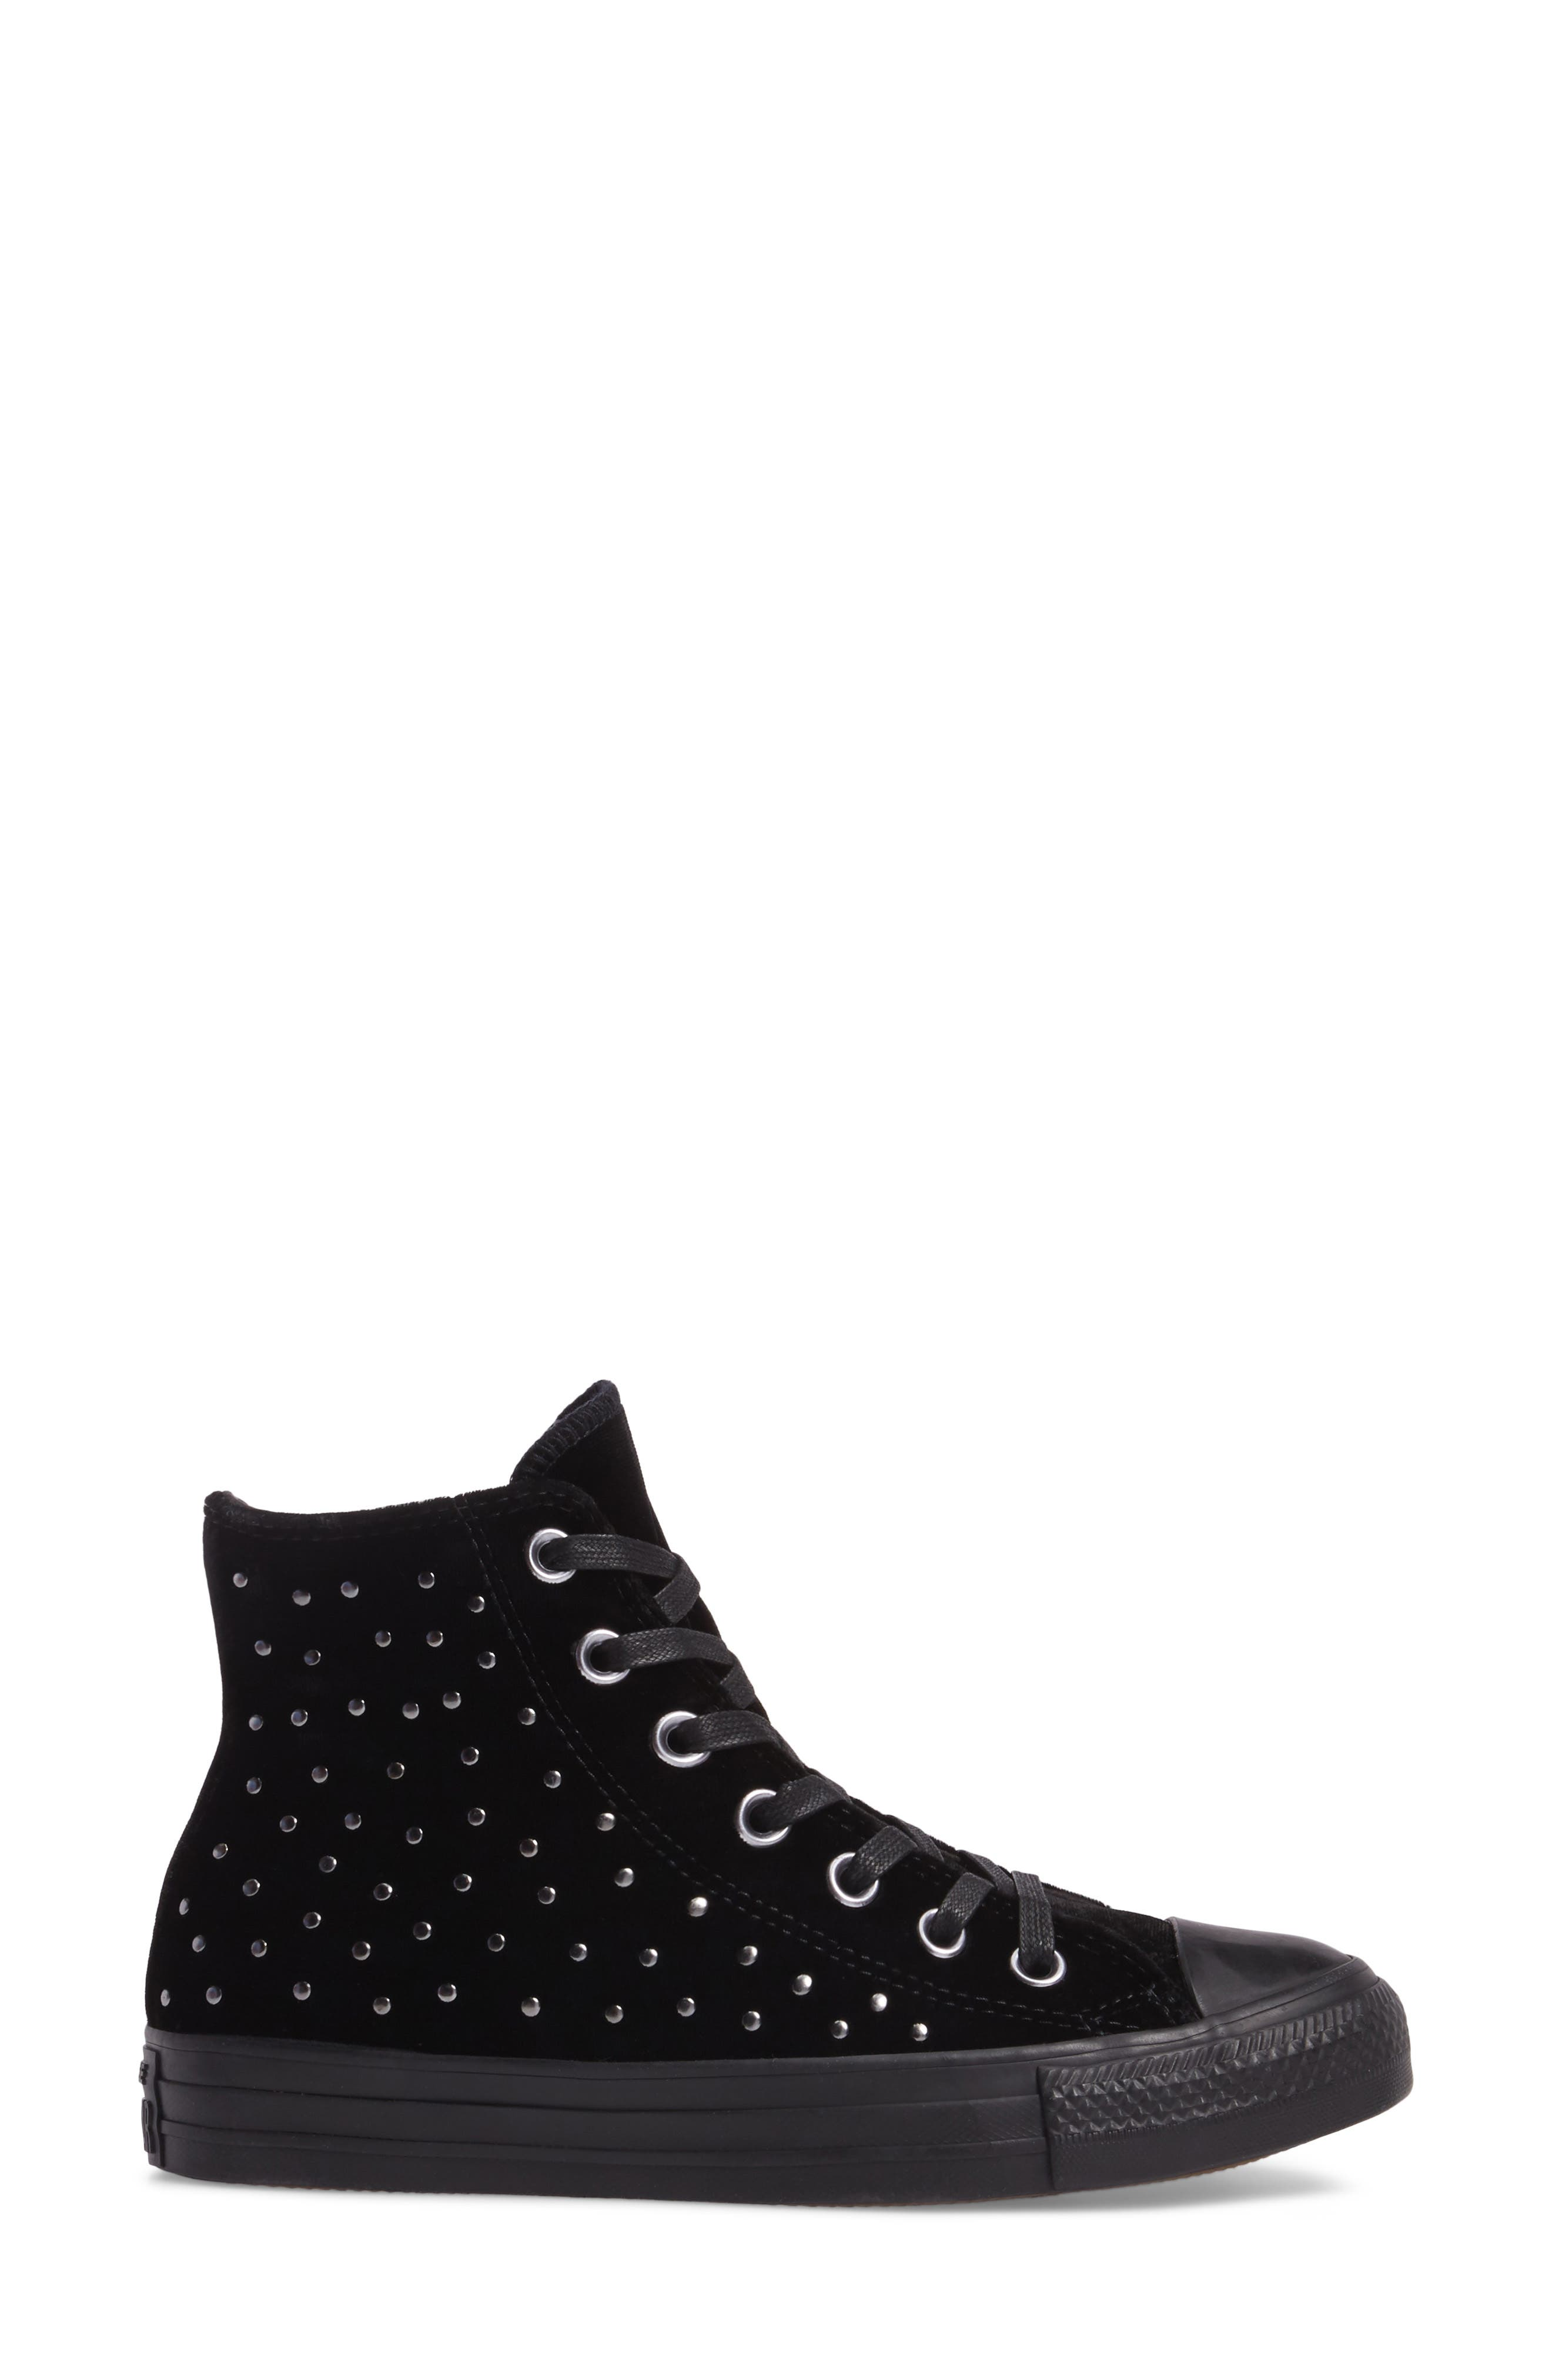 Chuck Taylor<sup>®</sup> All Star<sup>®</sup> Studded High Top Sneakers,                             Alternate thumbnail 3, color,                             001